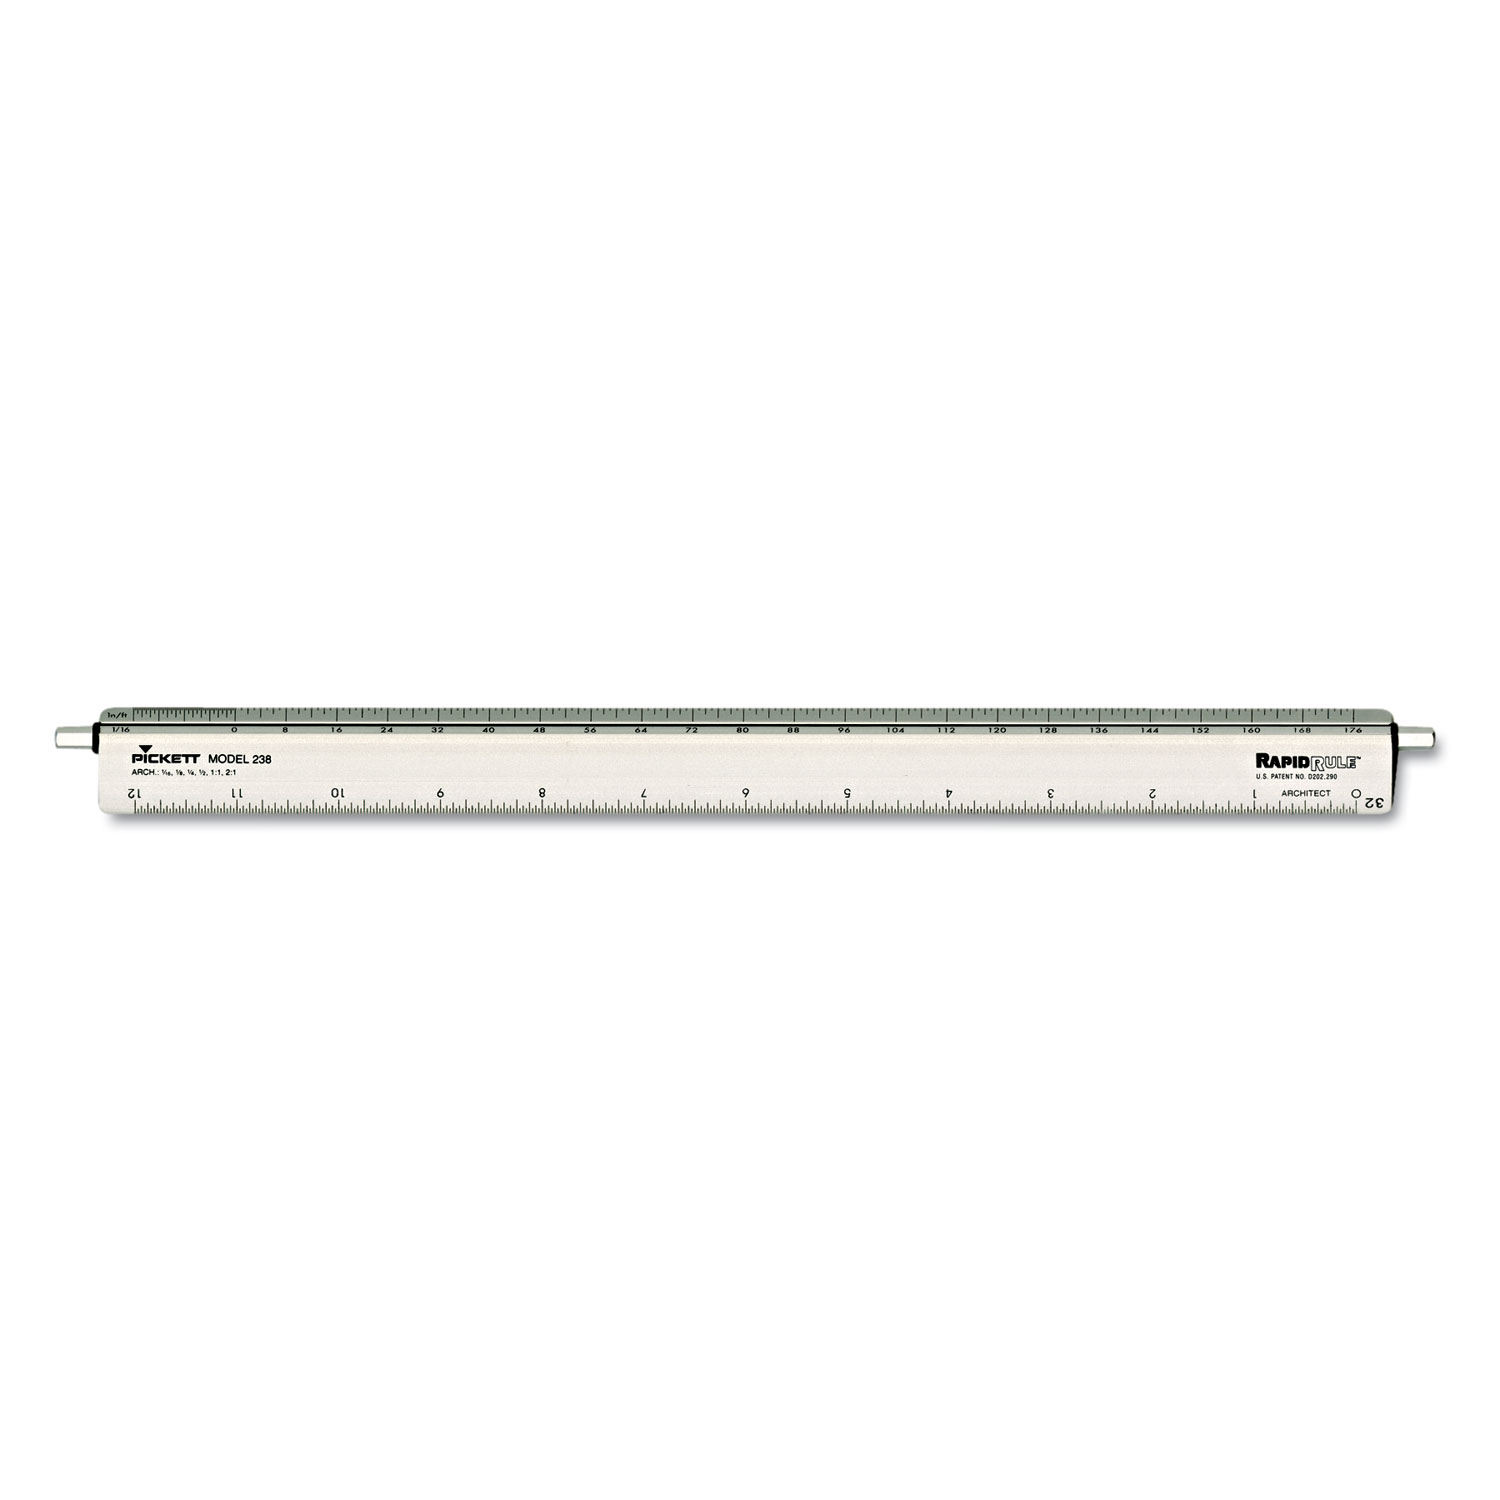 Adjustable Triangular Scale Aluminum Architects Ruler By